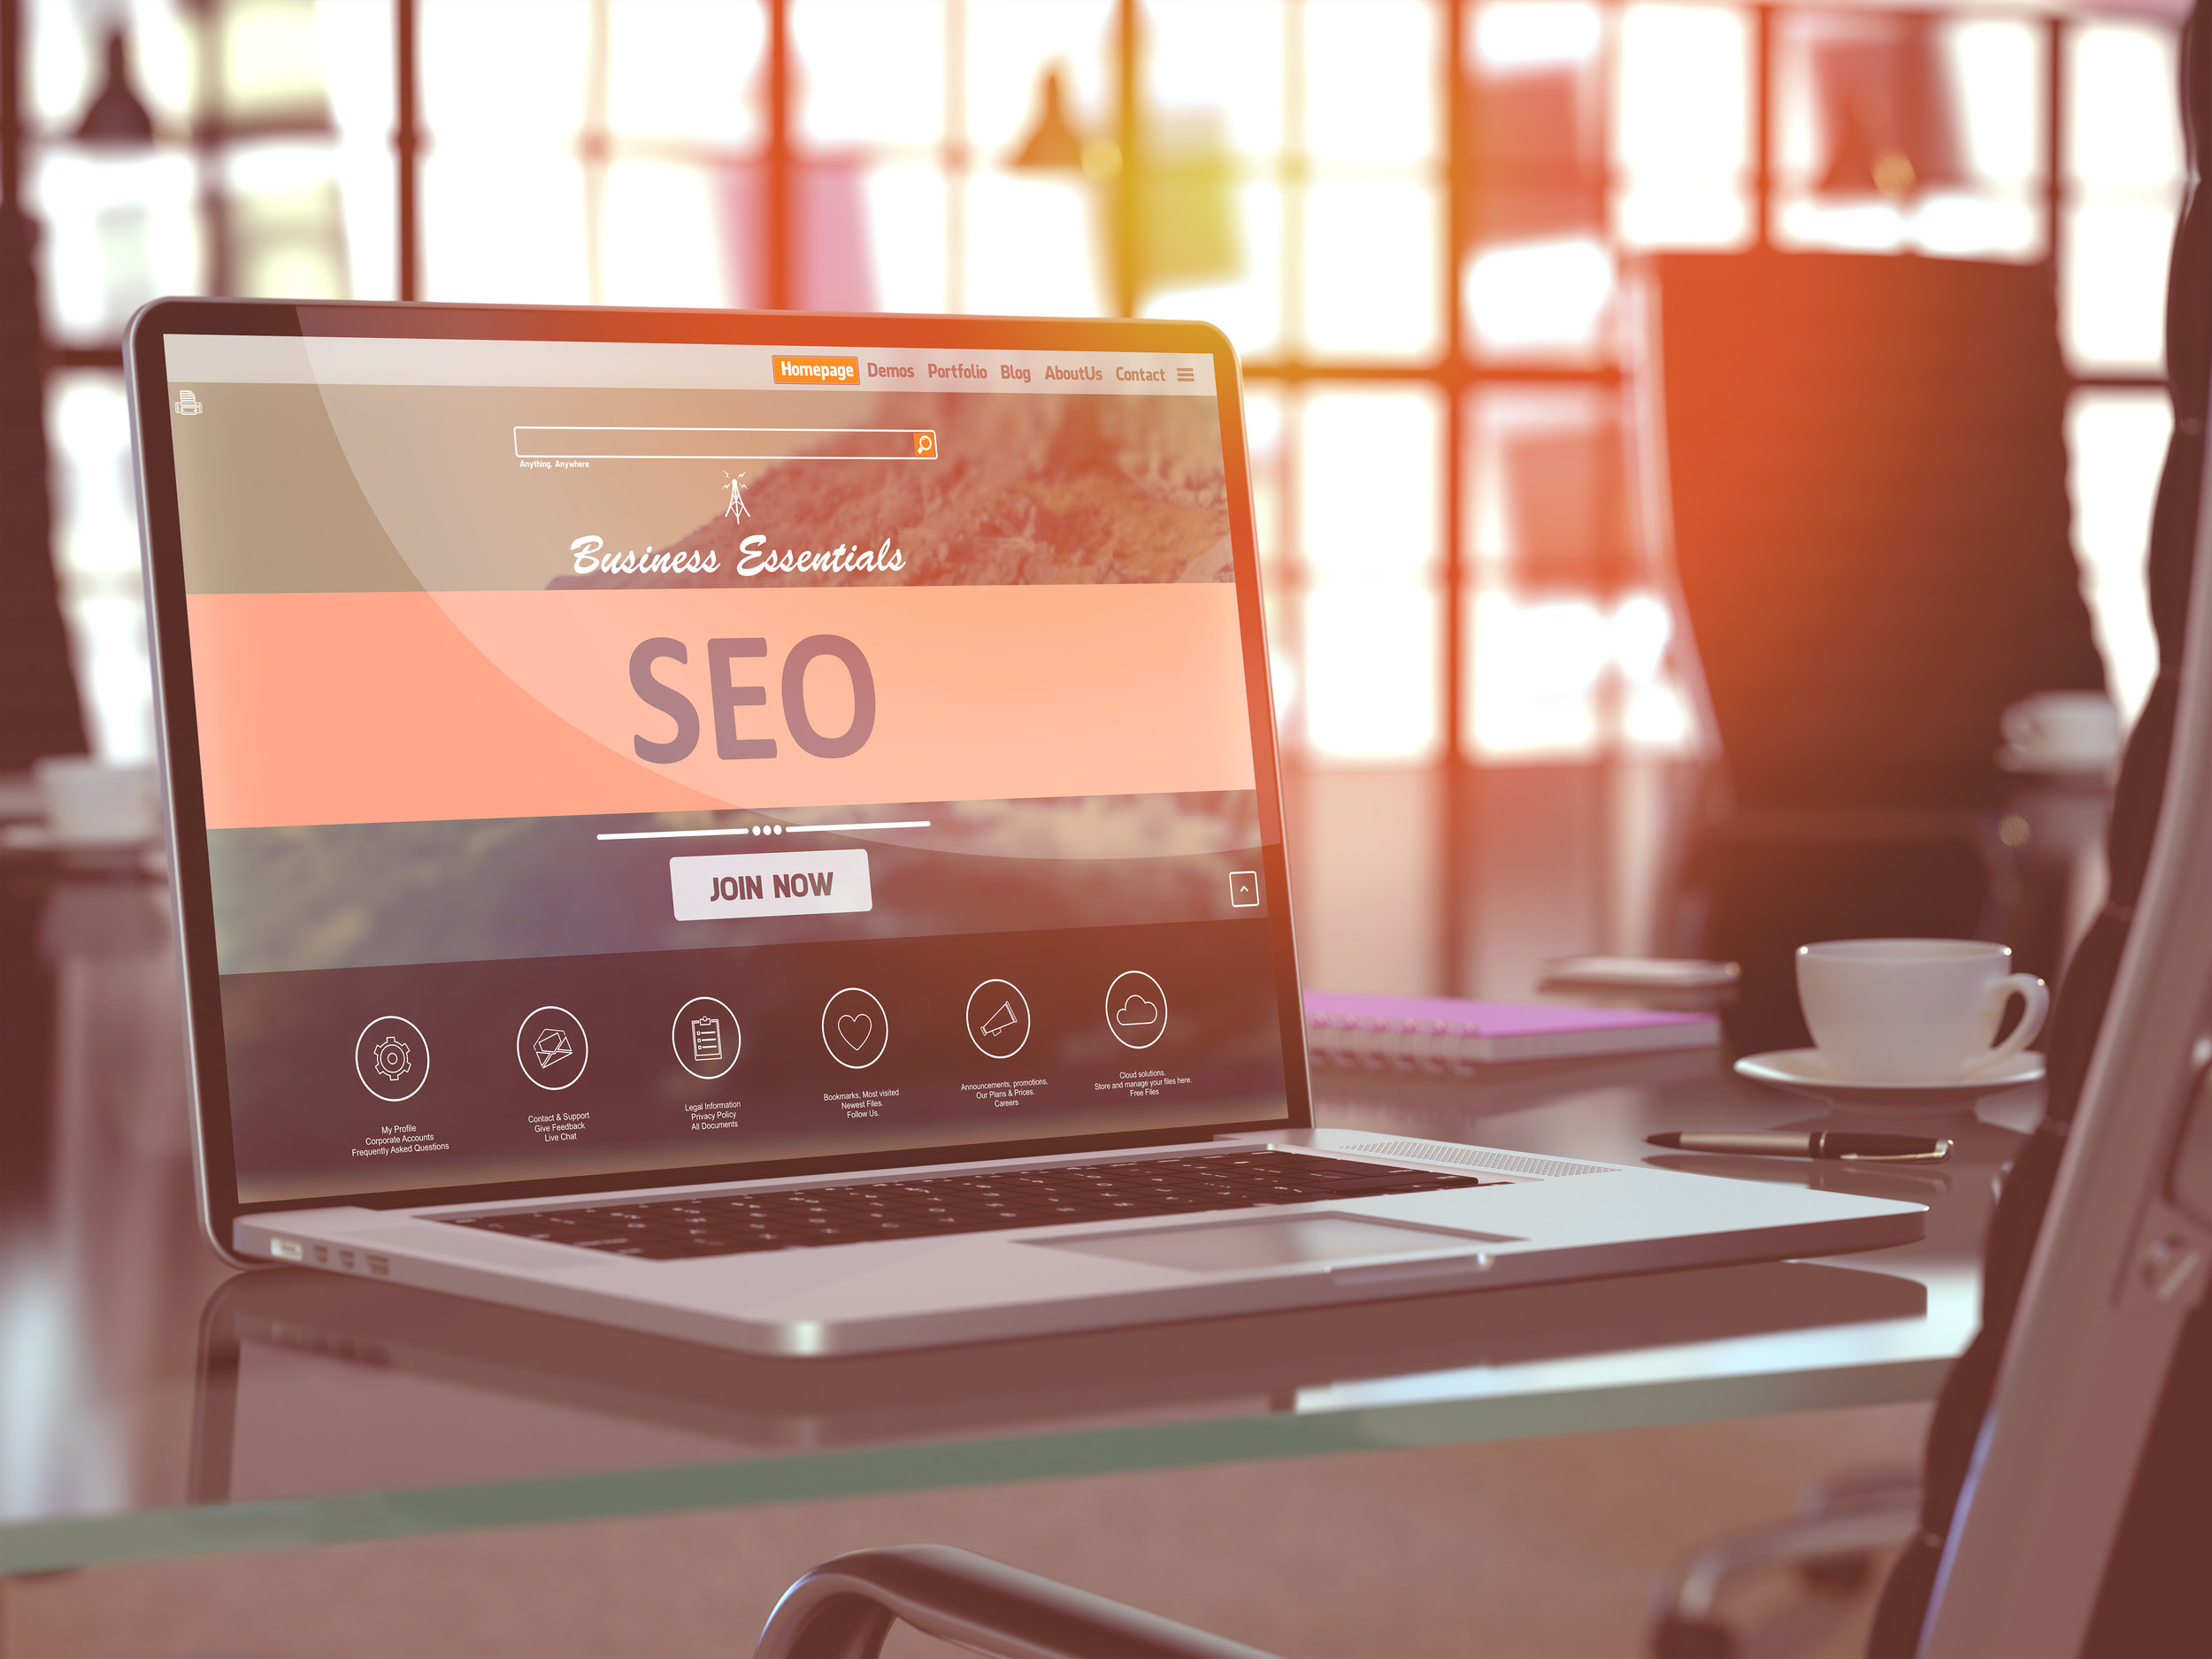 seo articles this week